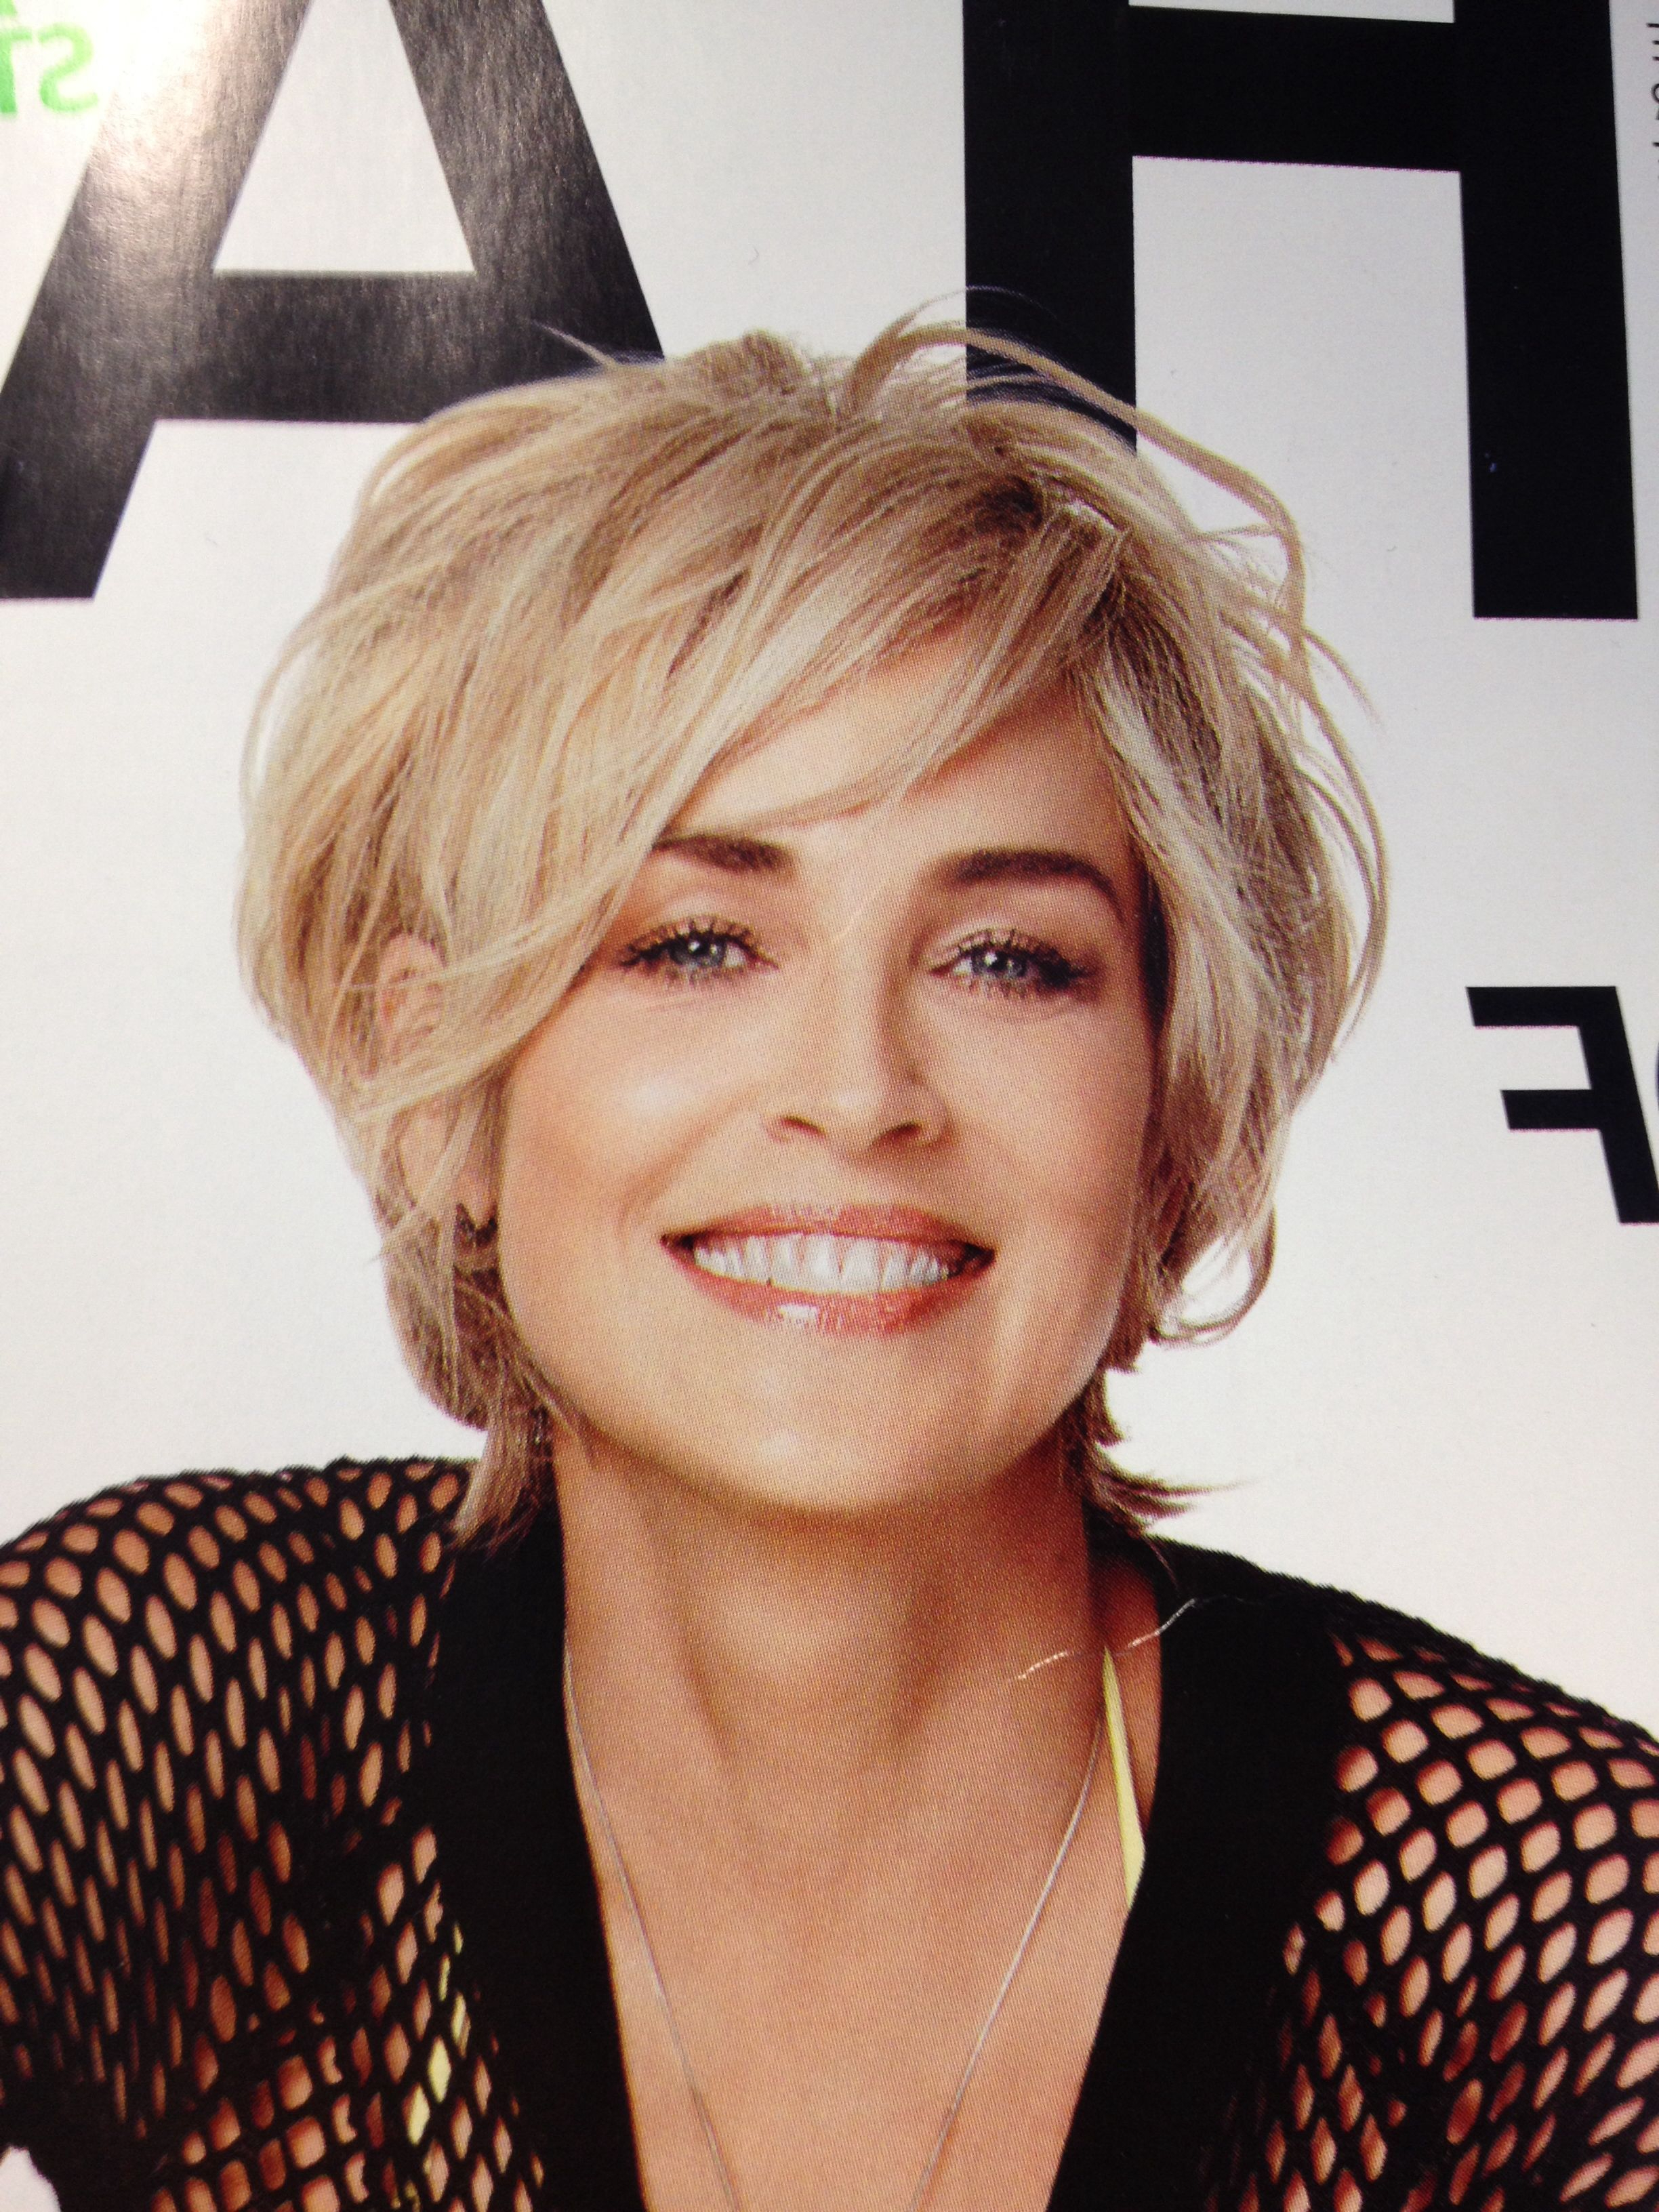 Sharon Stone At 56 I Like Her Hair Color And Style | Hair In 2018 Regarding Sharon Stone Short Haircuts (View 25 of 25)